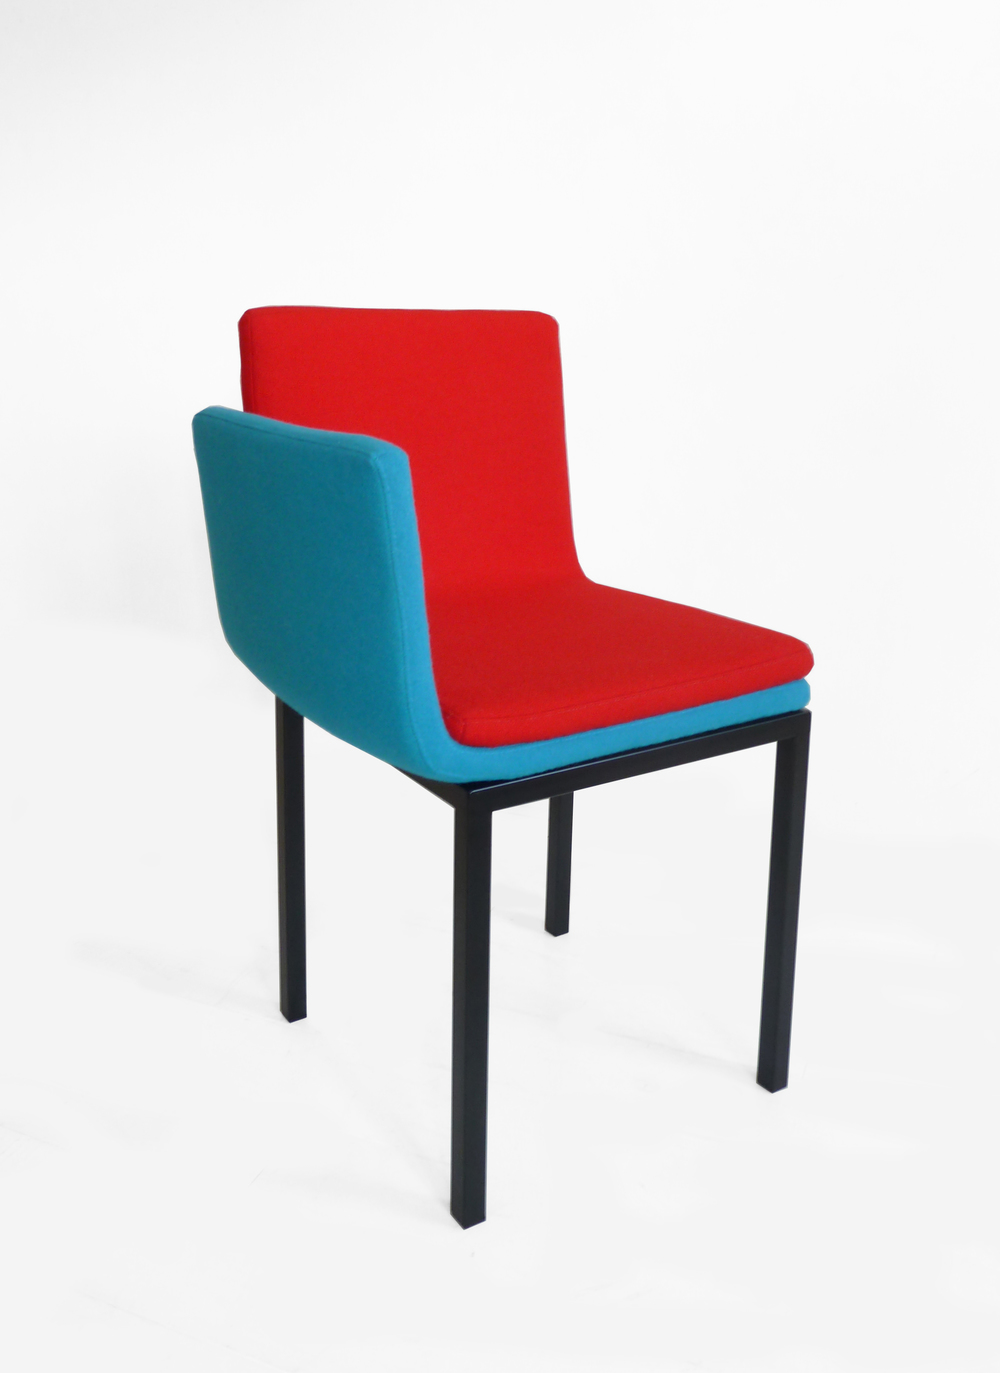 red blue chair 1.jpg